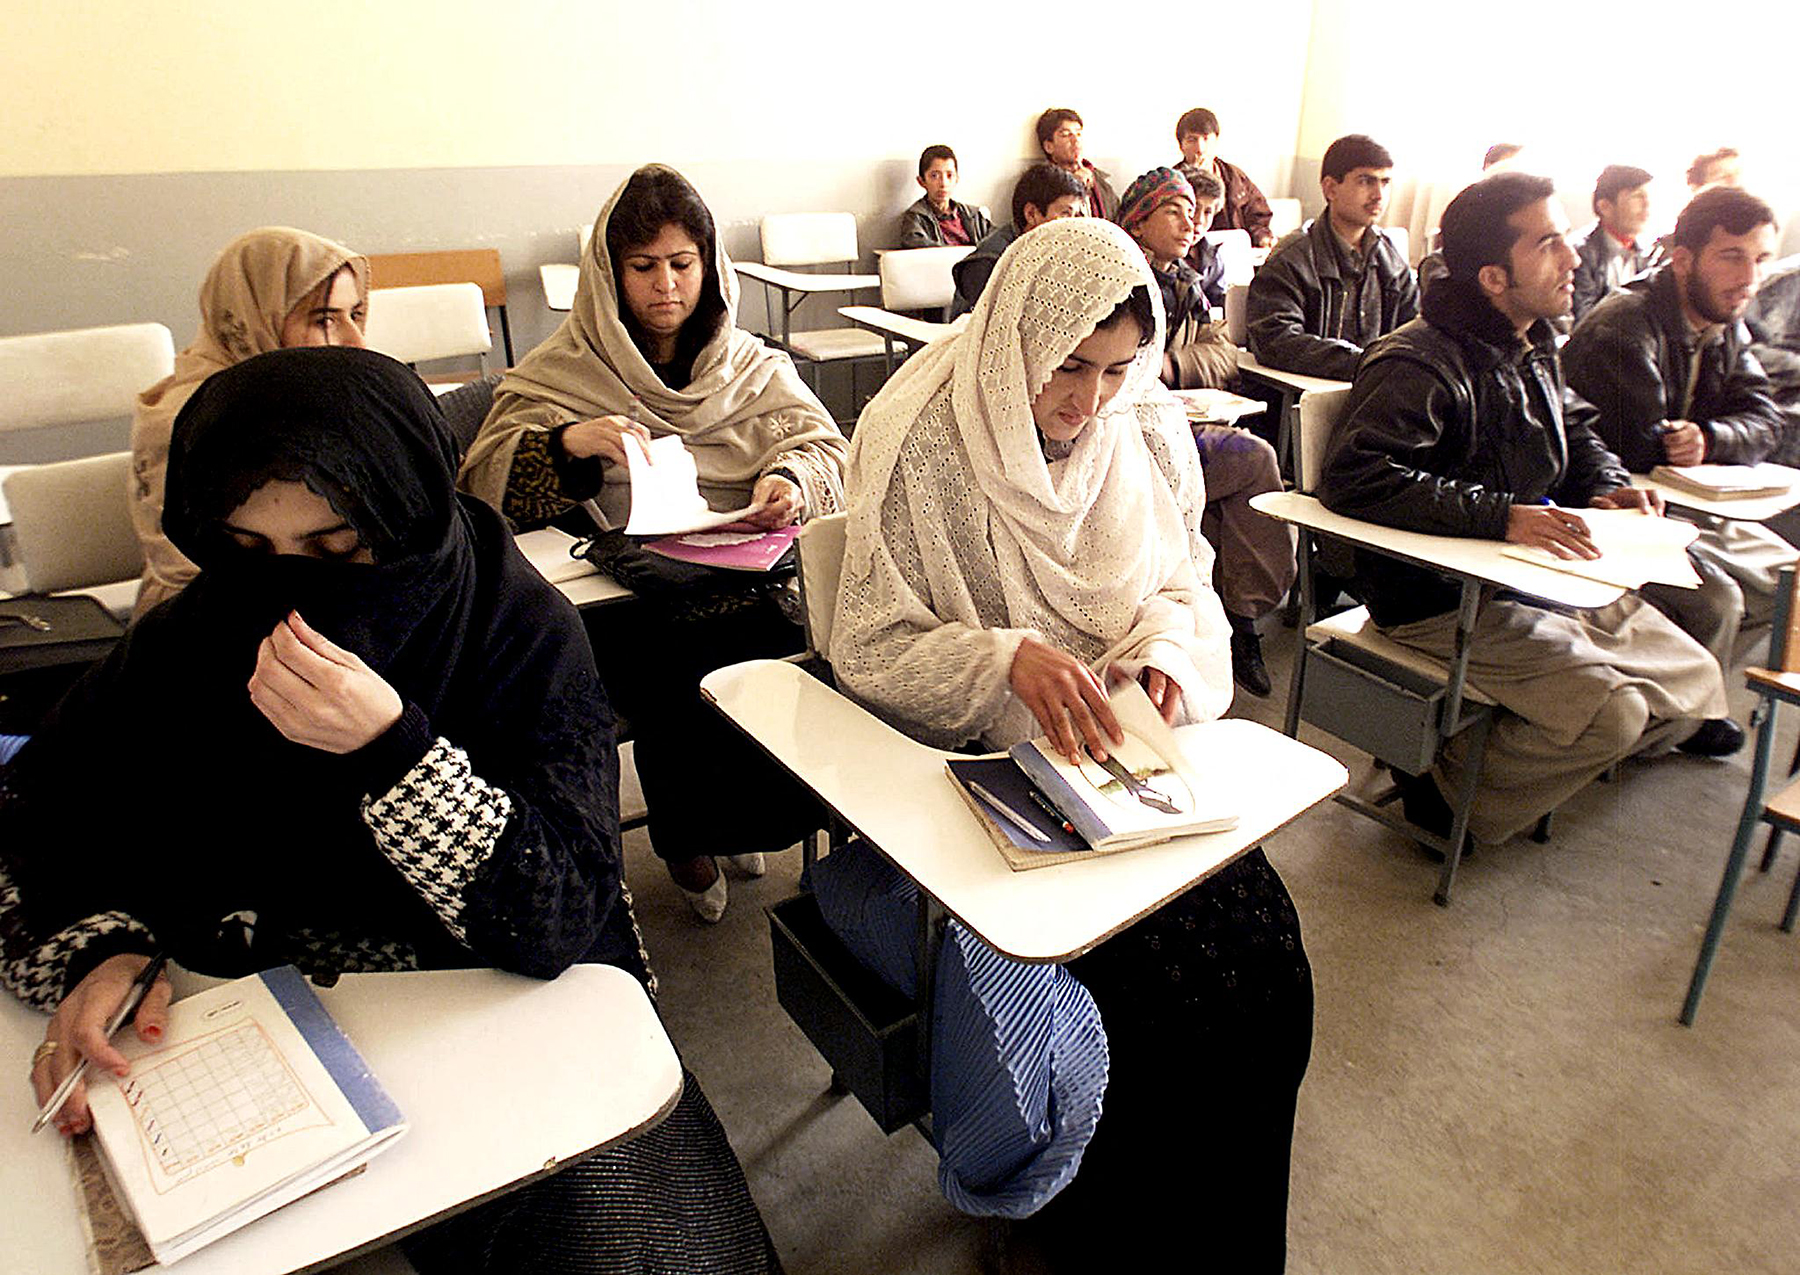 Afghan women sit as they study english in a class among male students in Kabul, 11 December 2001. Afghan women were not allowed to work out side home and study during the five years of the Taliban. Efforts are being made for more women rights after the fundamentalist regime of the Taliban collapsed 13 November. AFP PHOTO/Weda (Photo by WEDA / AFP) (Photo by WEDA/AFP via Getty Images)